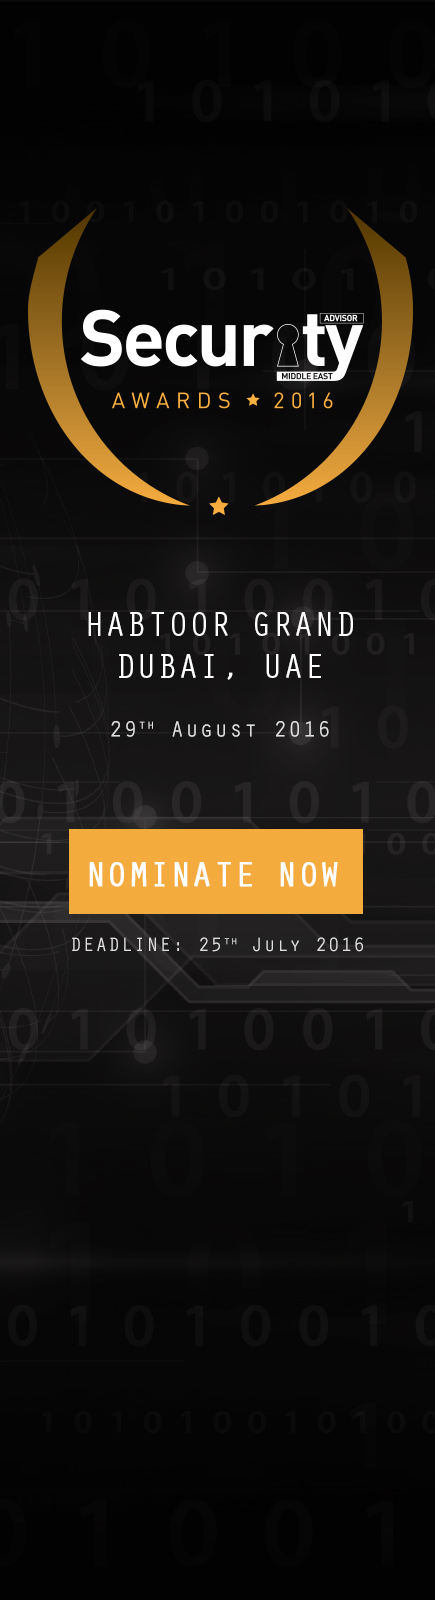 Security Advisor Middle East Awards 2016